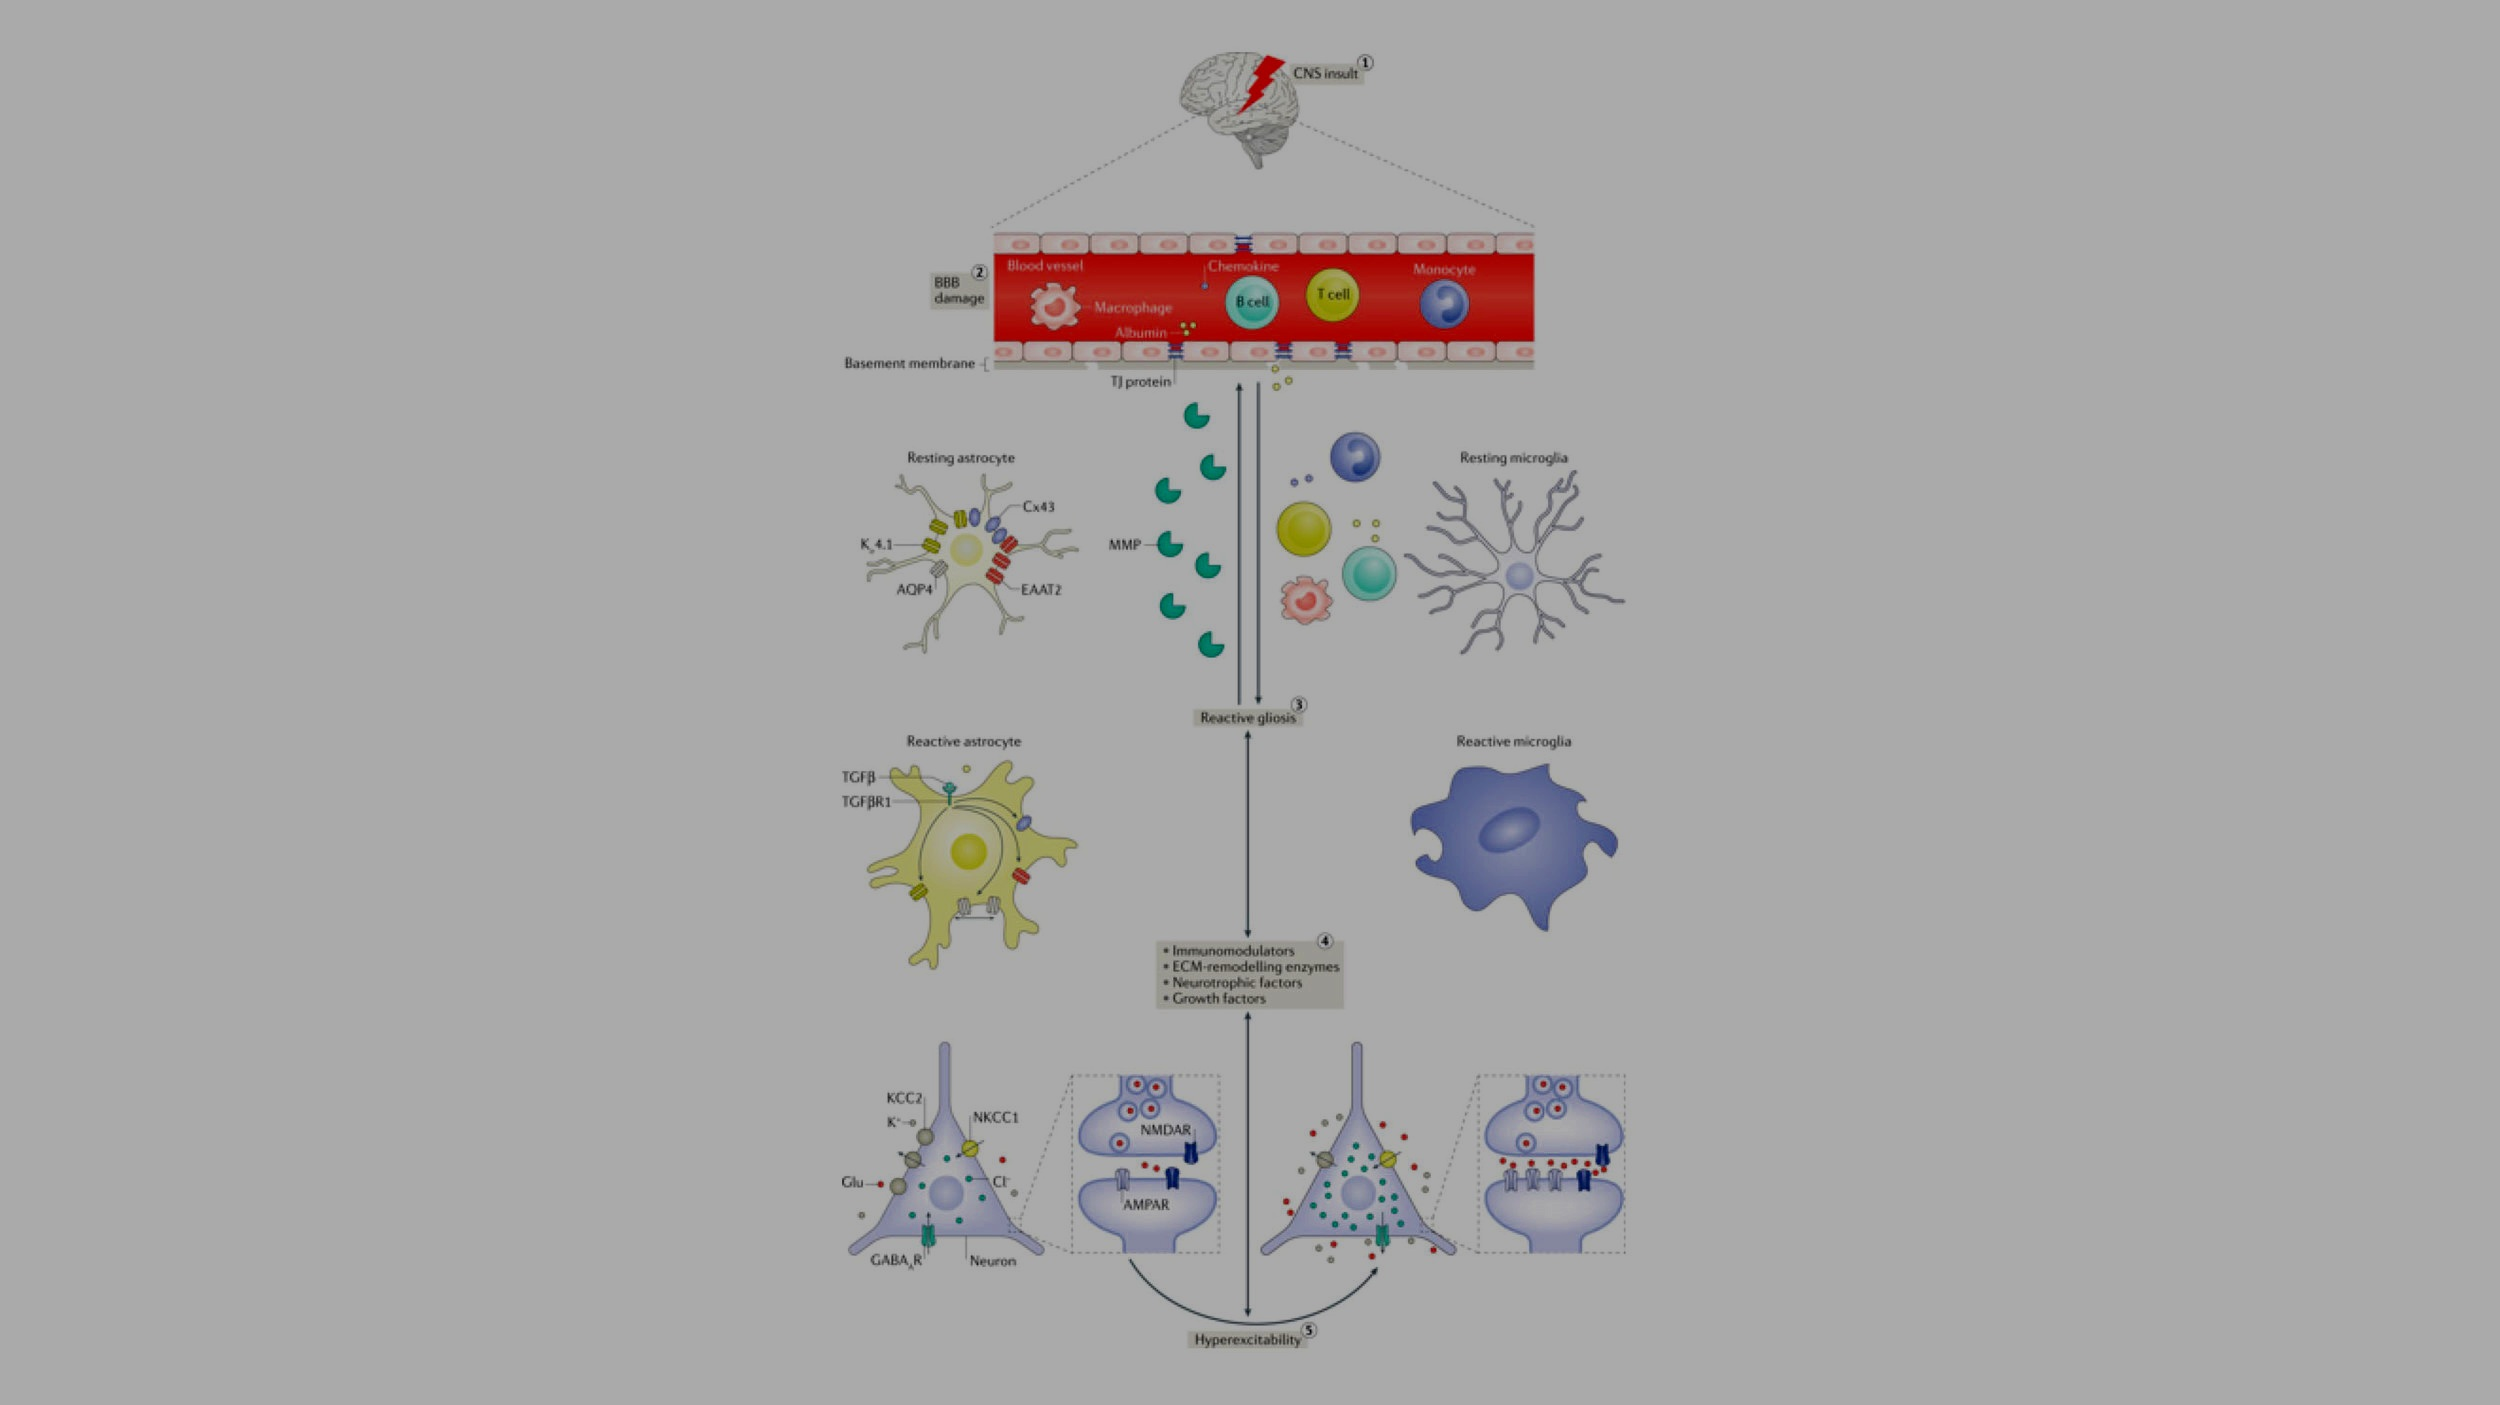 Neuron-glia interactions in the pathophysiology of epilepsy